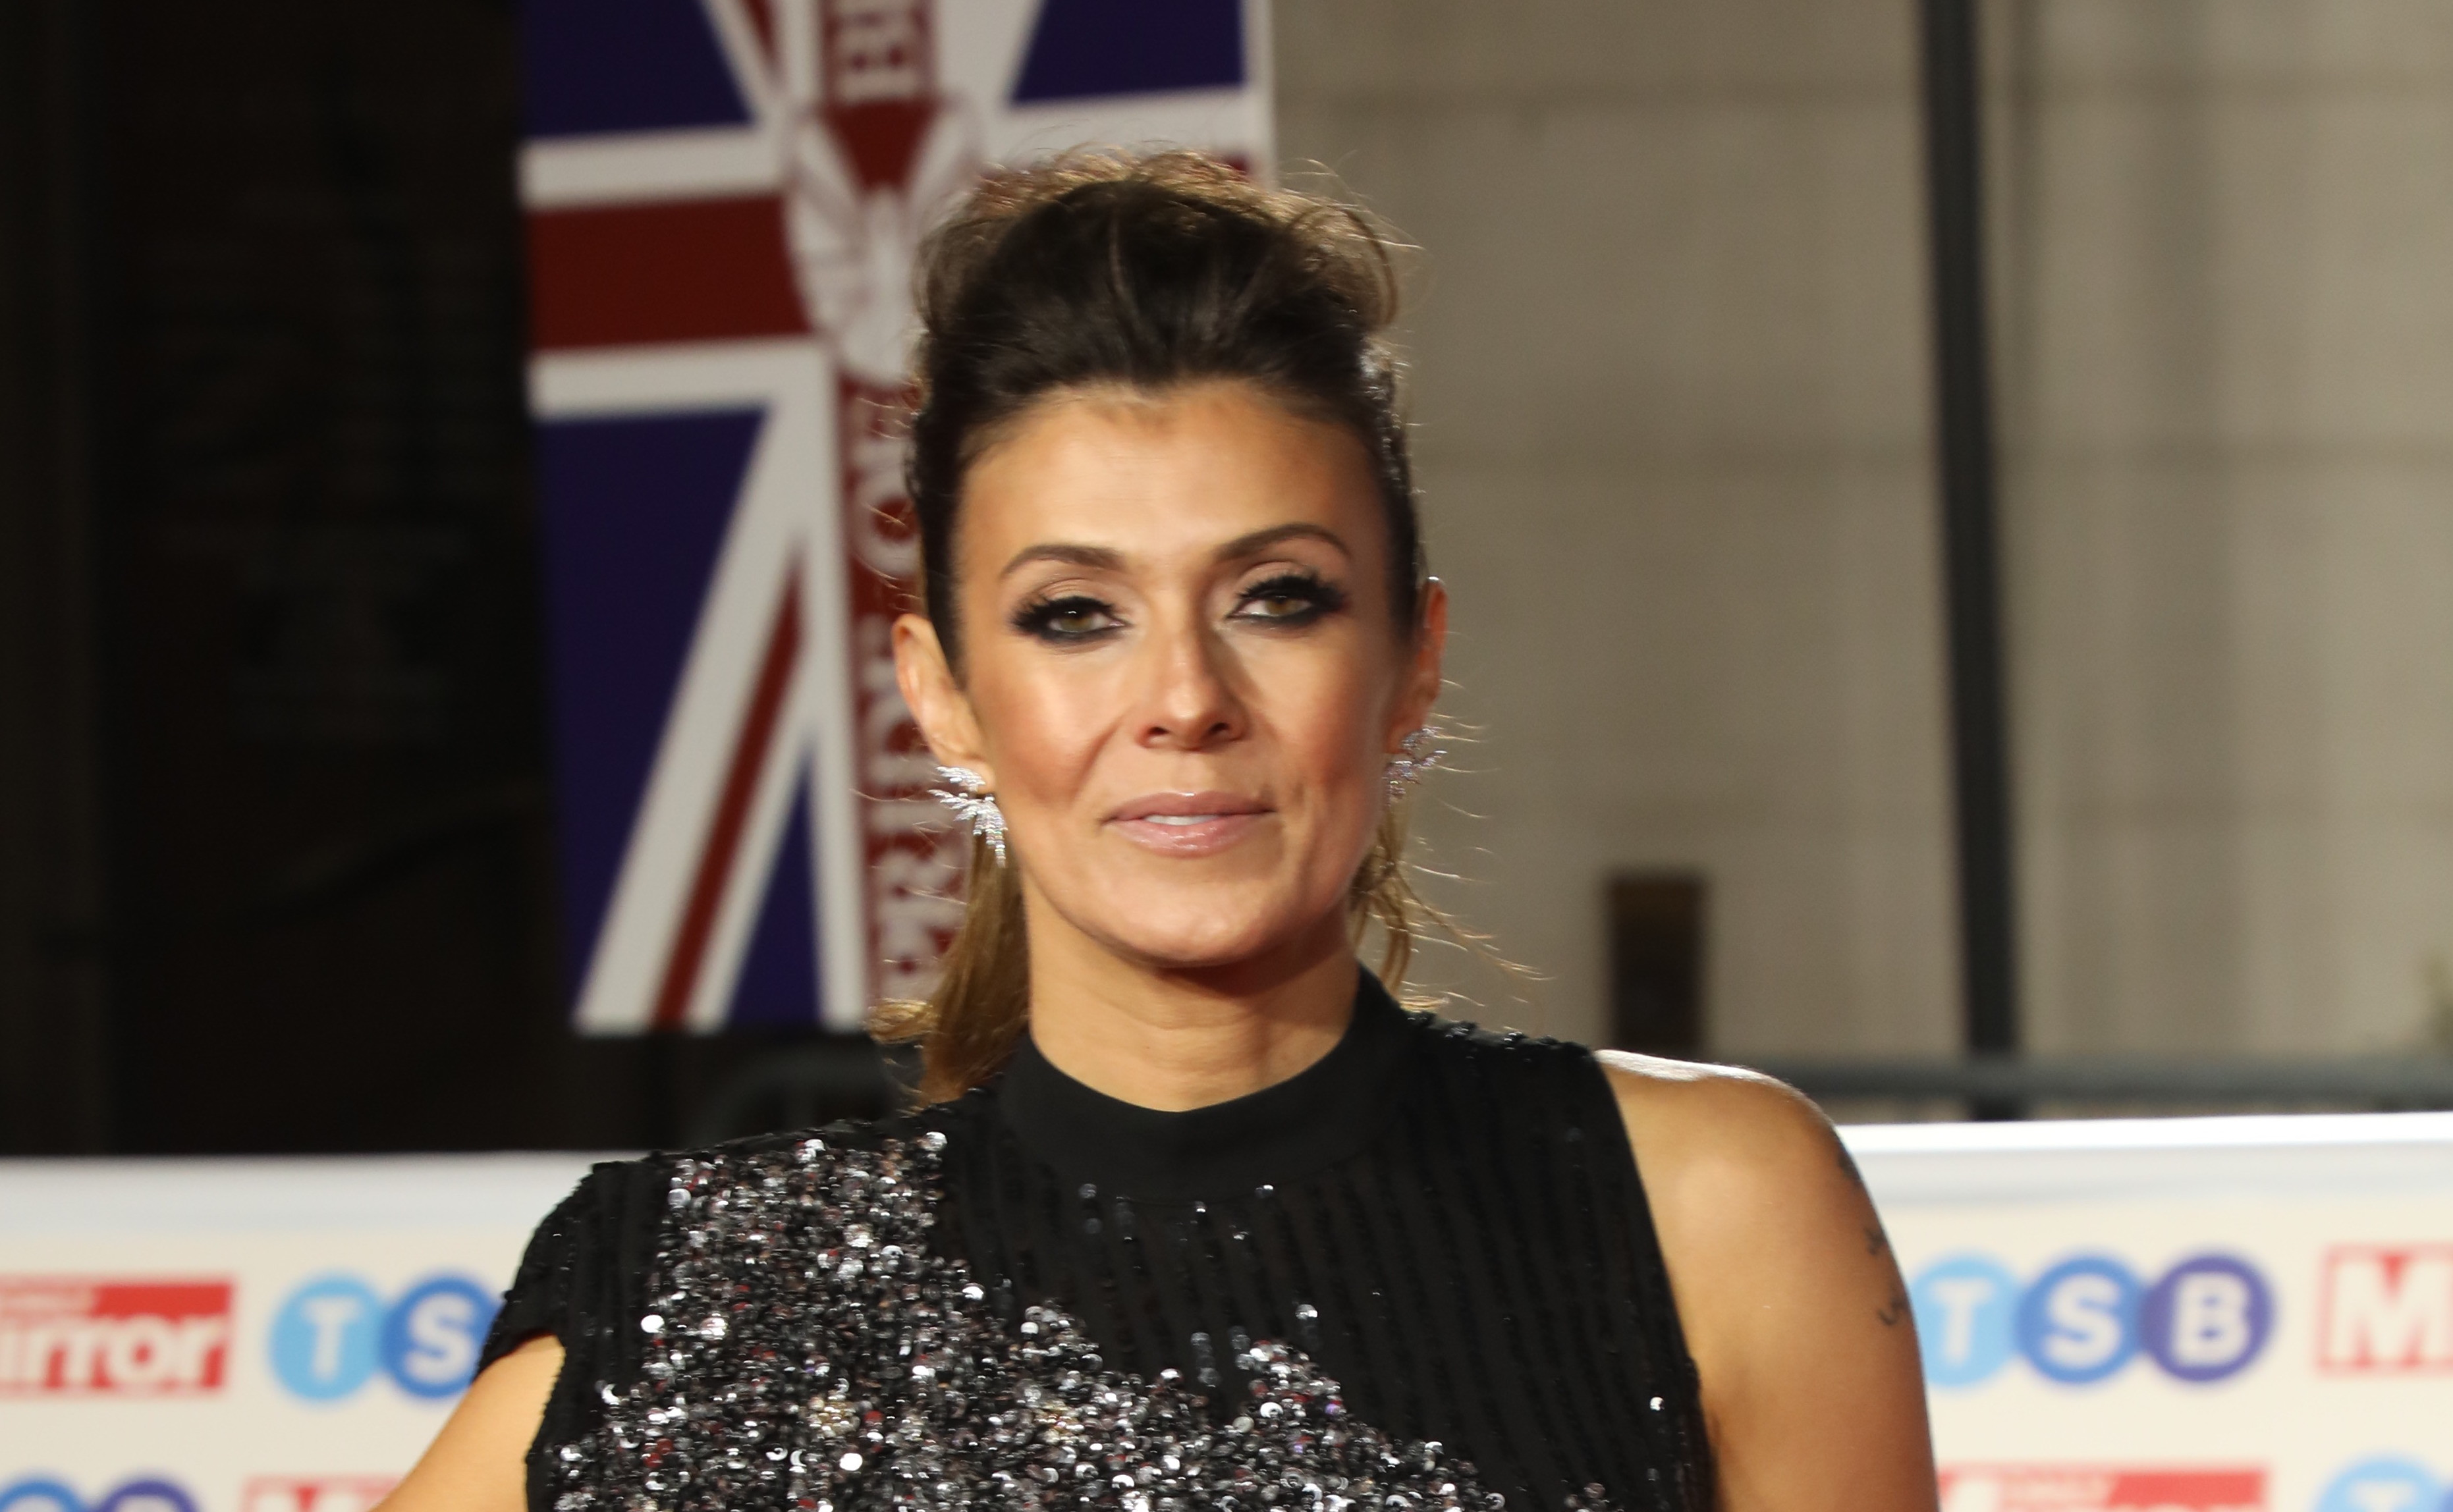 Kym Marsh says she will be very glad when The Masked Singer is finished